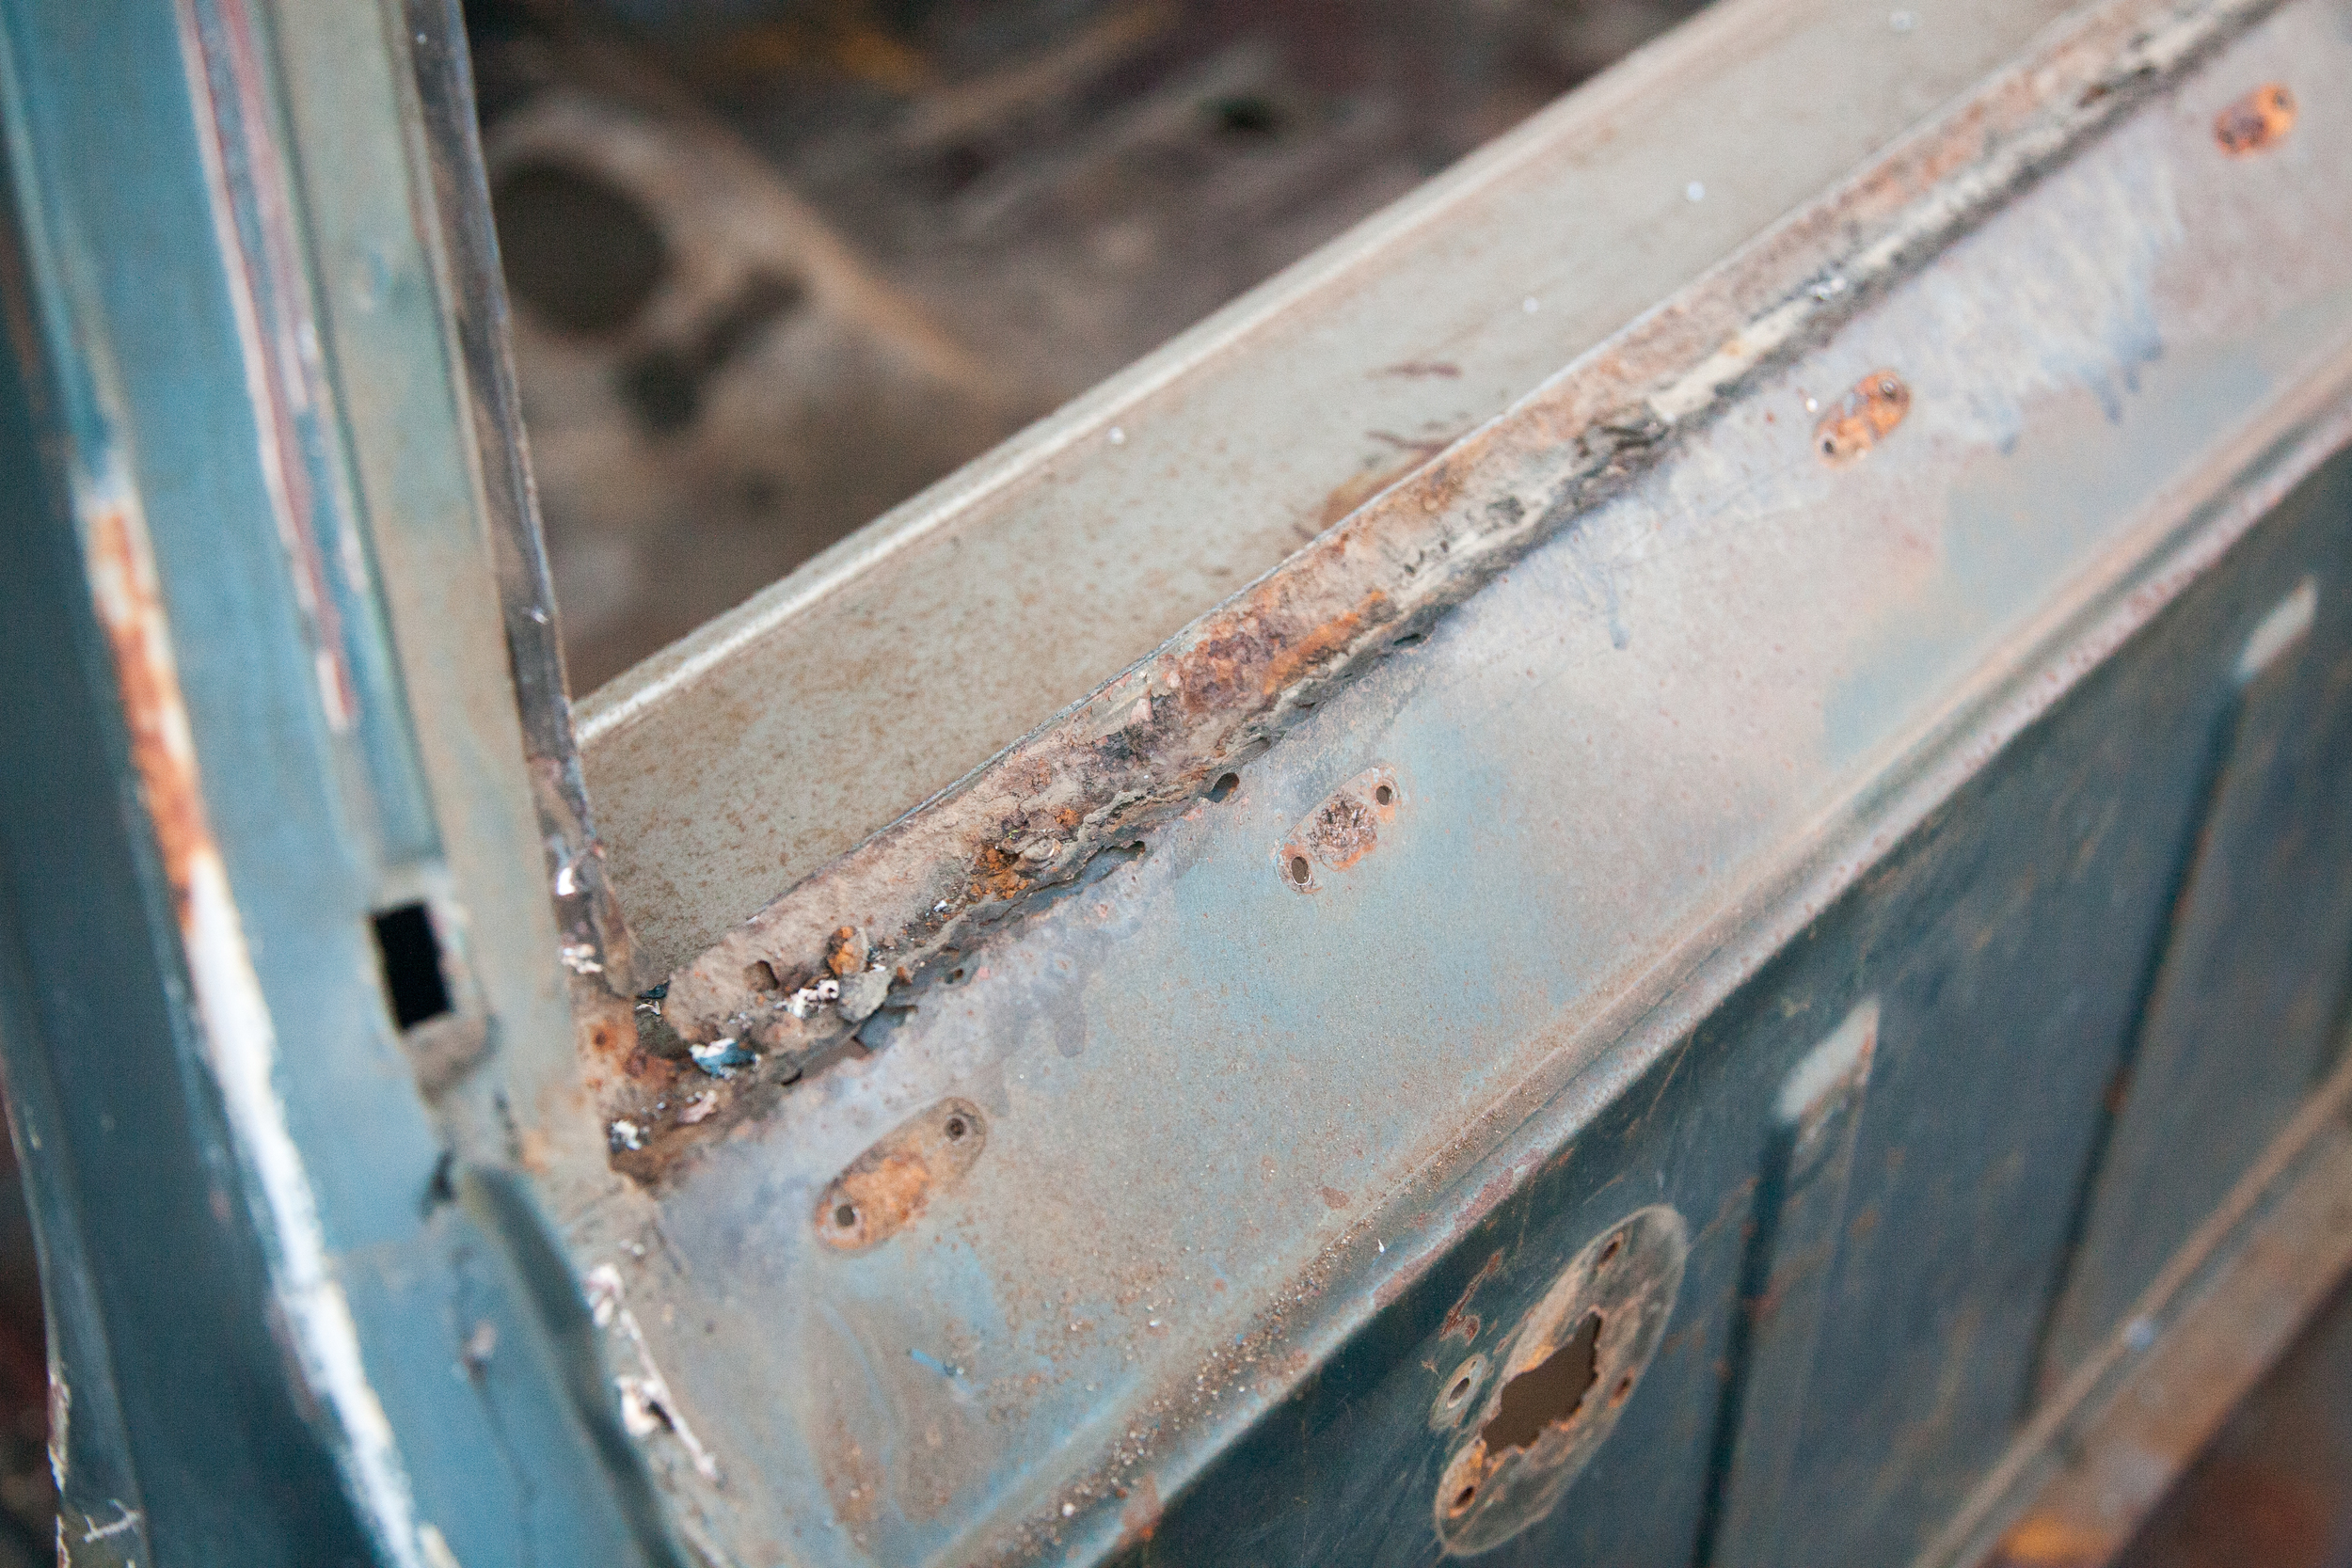 Rust in the typical areas is evident, like this back window area. Sandblastingwill uncover the full extent of the damage.